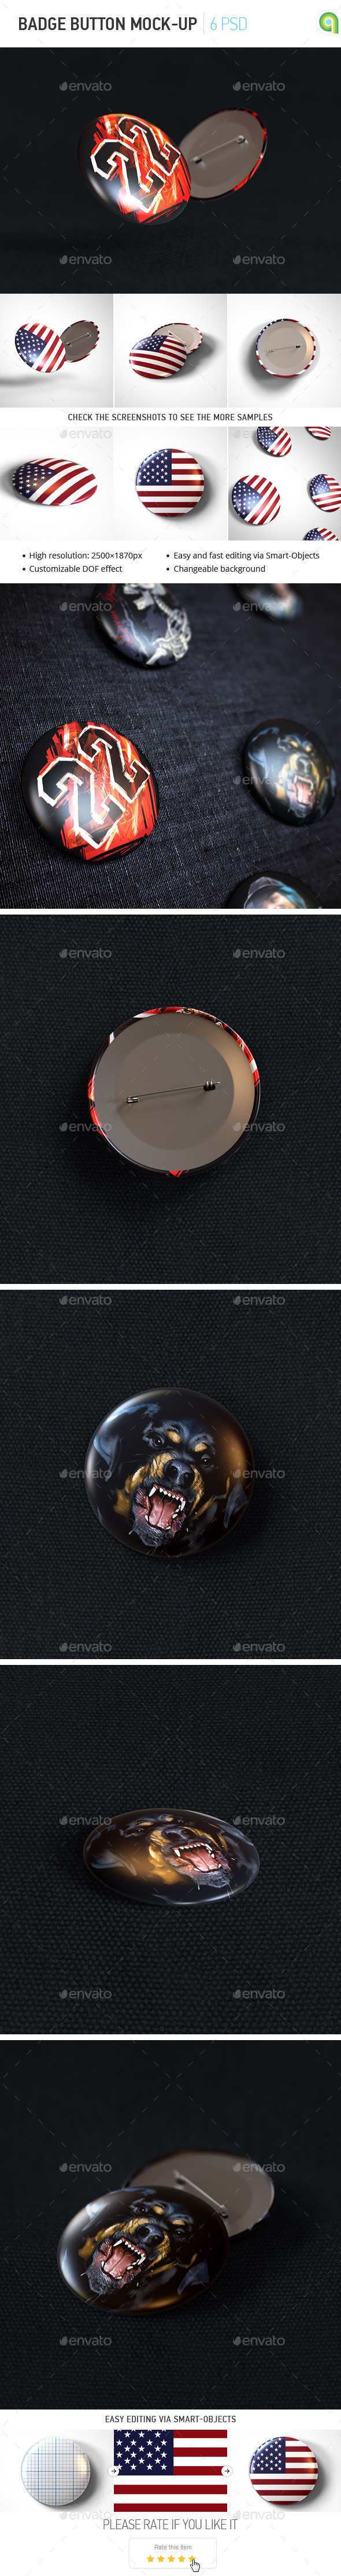 Badge Button Mockup - Miscellaneous Print